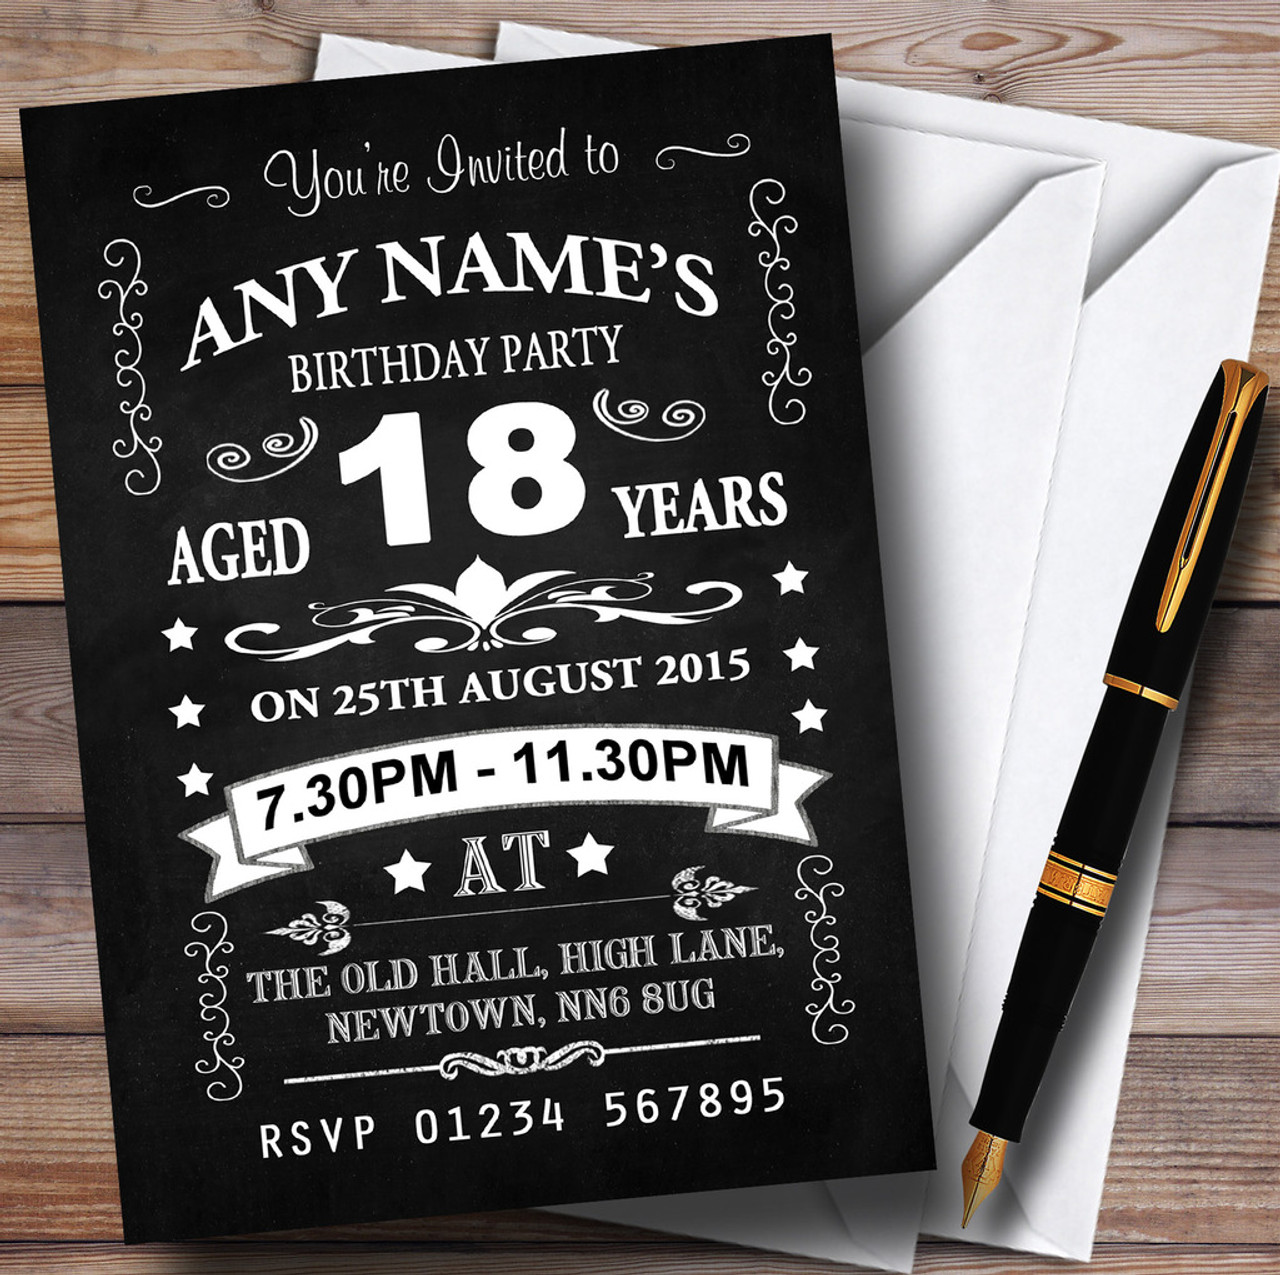 Personalised Party Invitations - Birthday Party Invitations ...